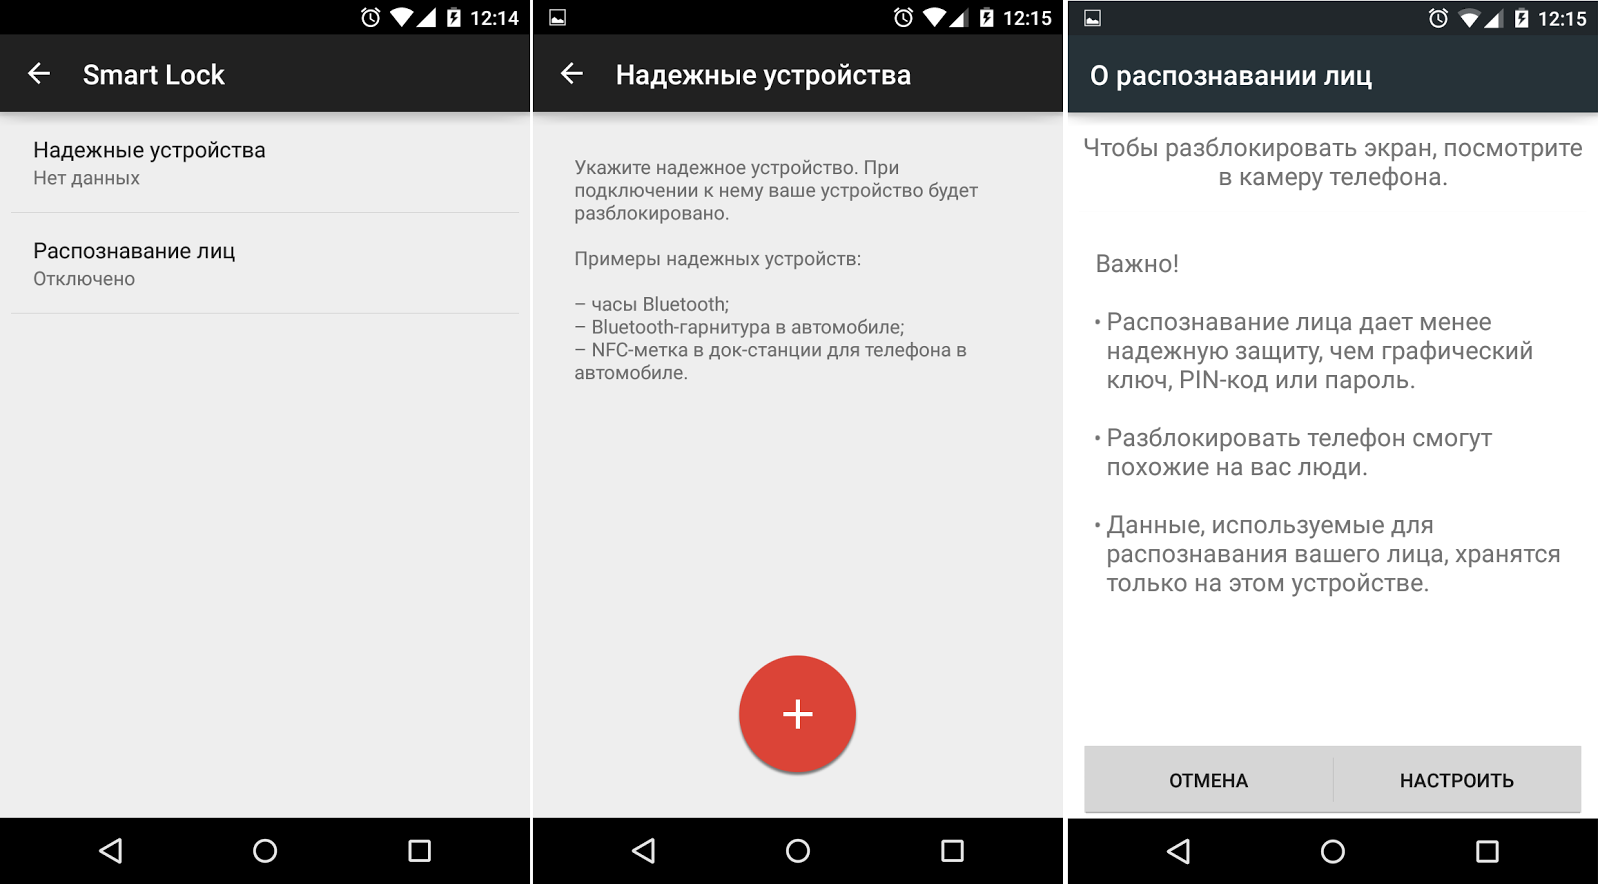 Android Lollipop: Smart Lock